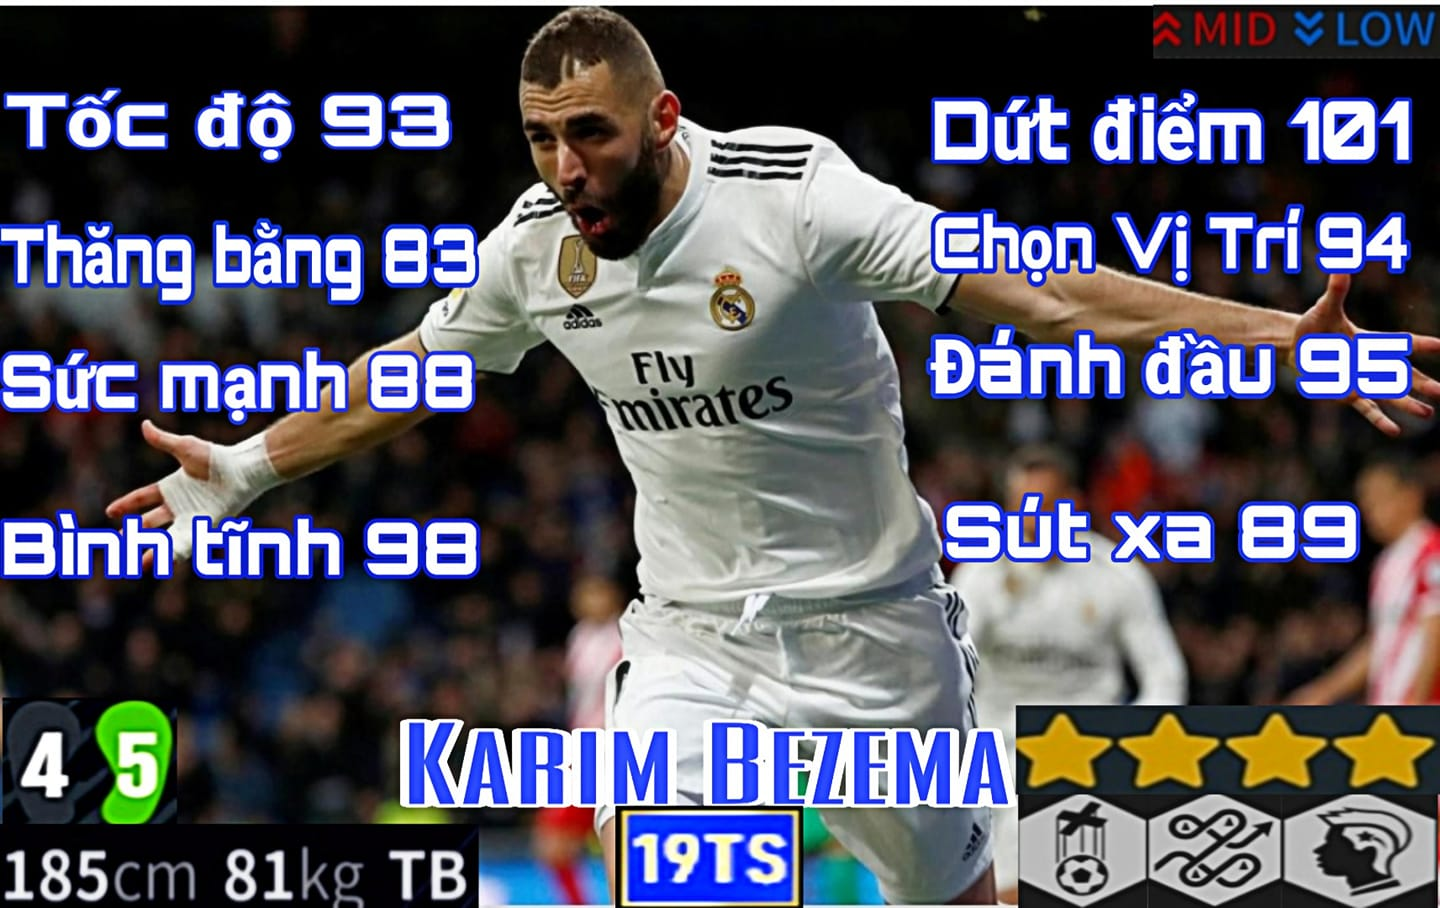 Review Karim Benzema 19TOTS Trong FiFa Online 4